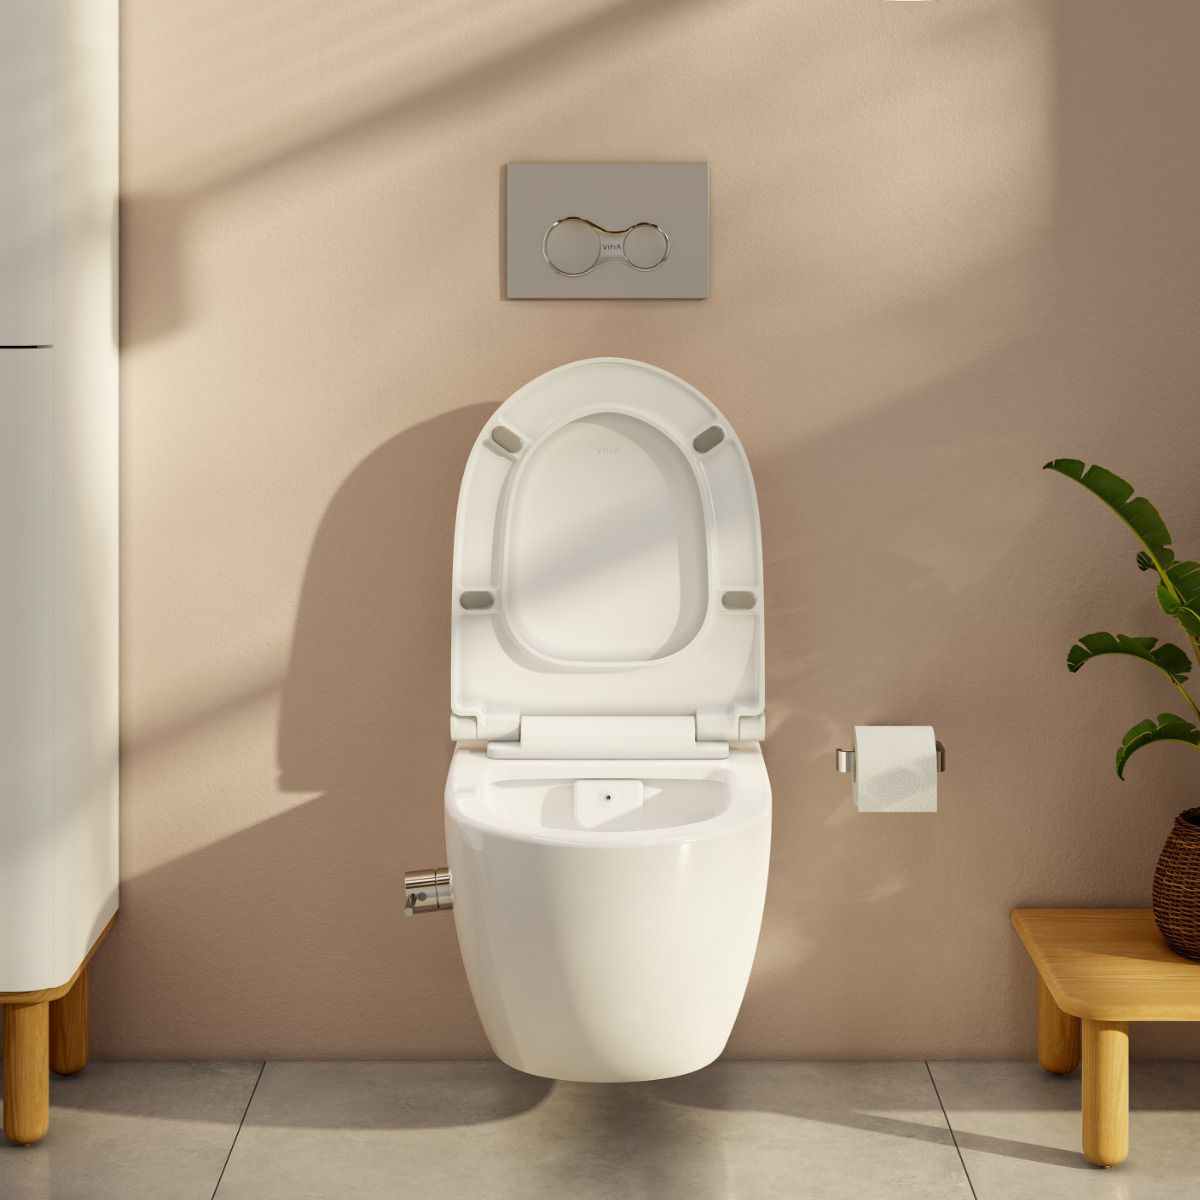 Vitra Aquacare Sento Rimless Wall Hung Bidet Toilet with Integrated Thermostatic Stop Valve - 77480036205